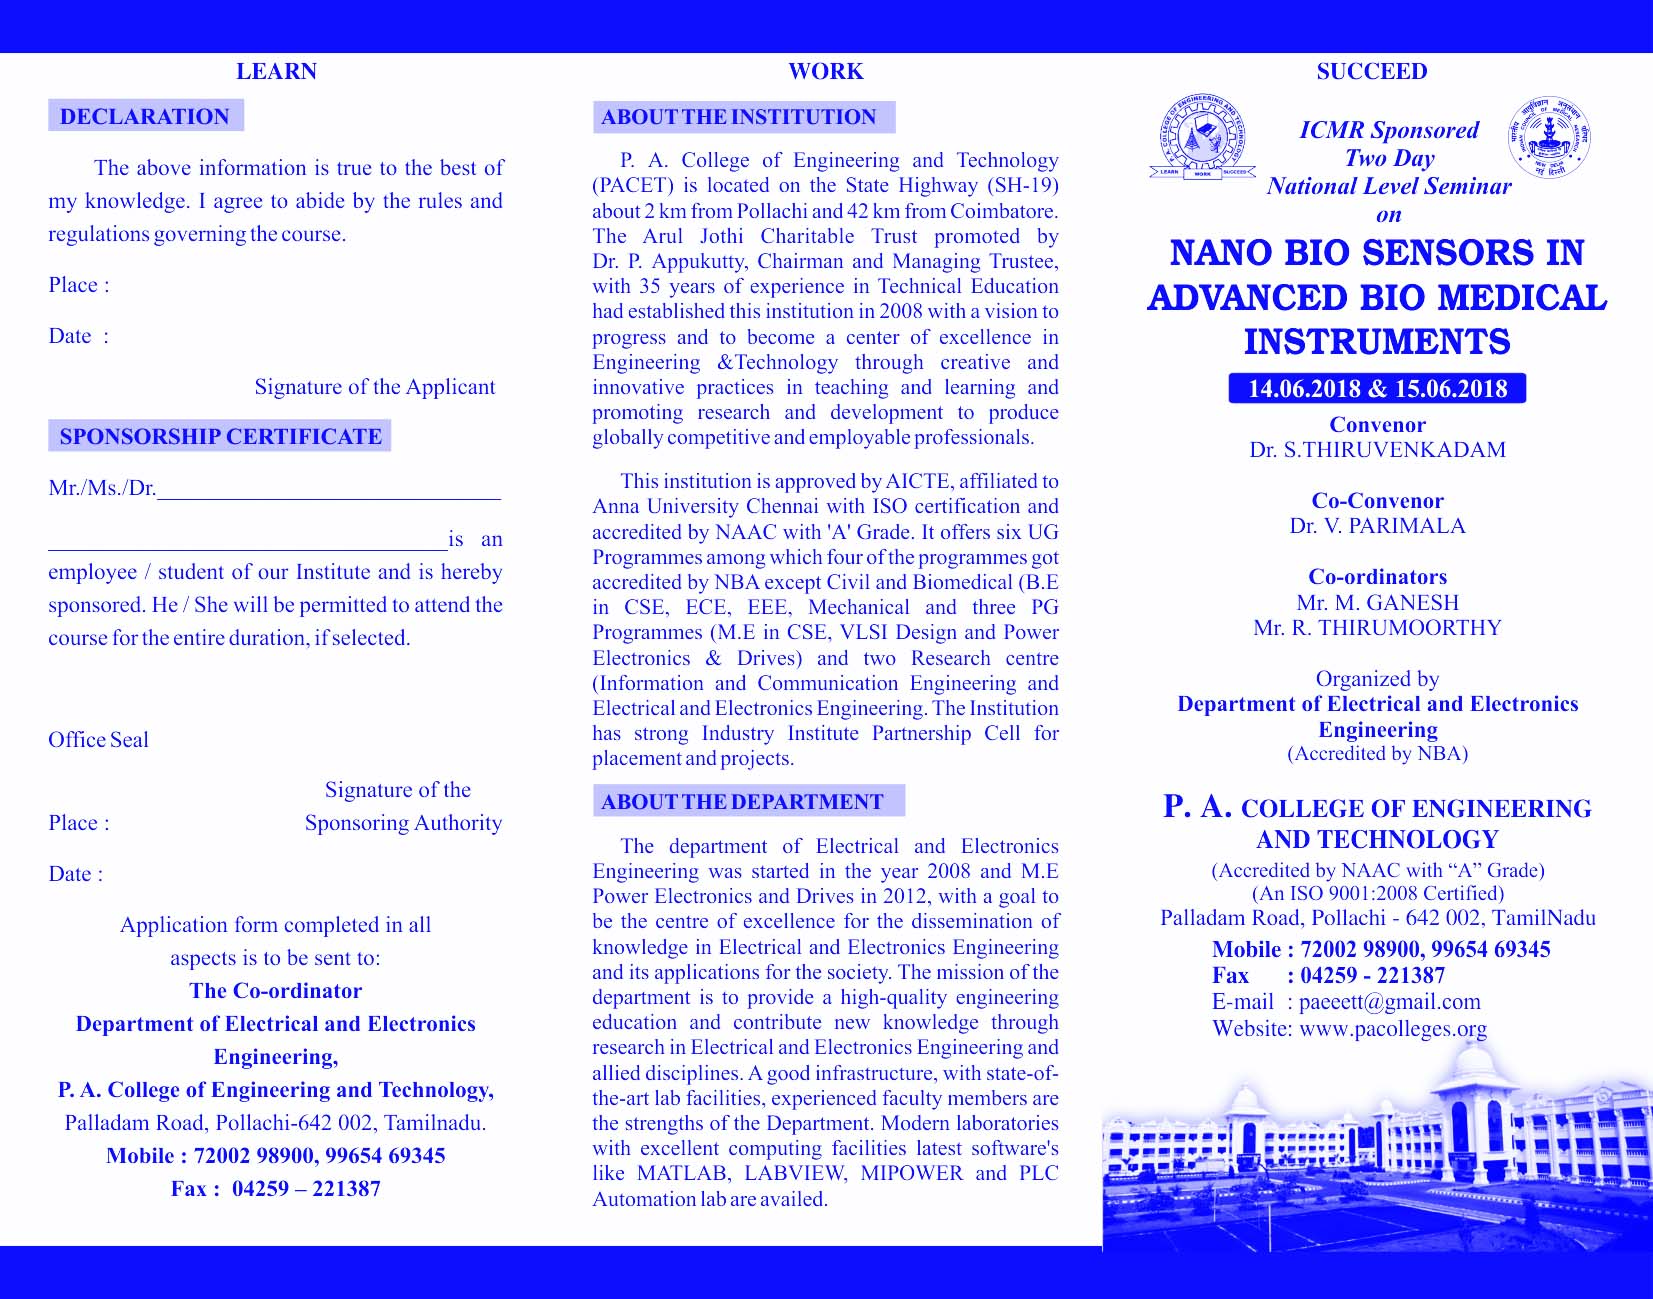 ICMR sponsored Two Day National Level Seminar on 'Nano Biosensors in Advanced Biomedical Instruments 2018